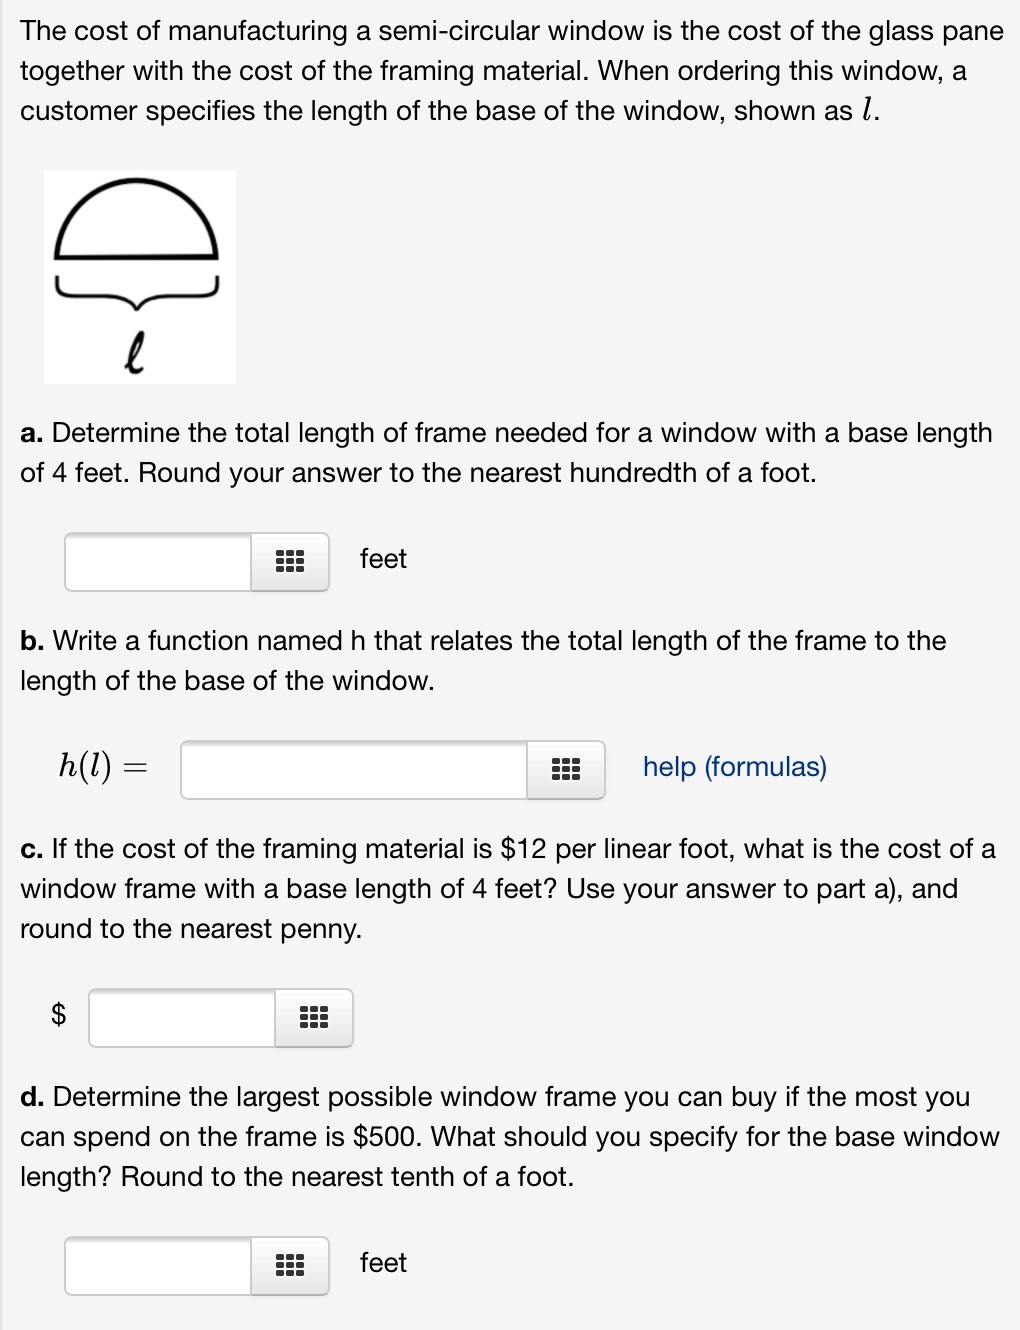 Solved: The Cost Of Manufacturing A Semi-circular Window I ...